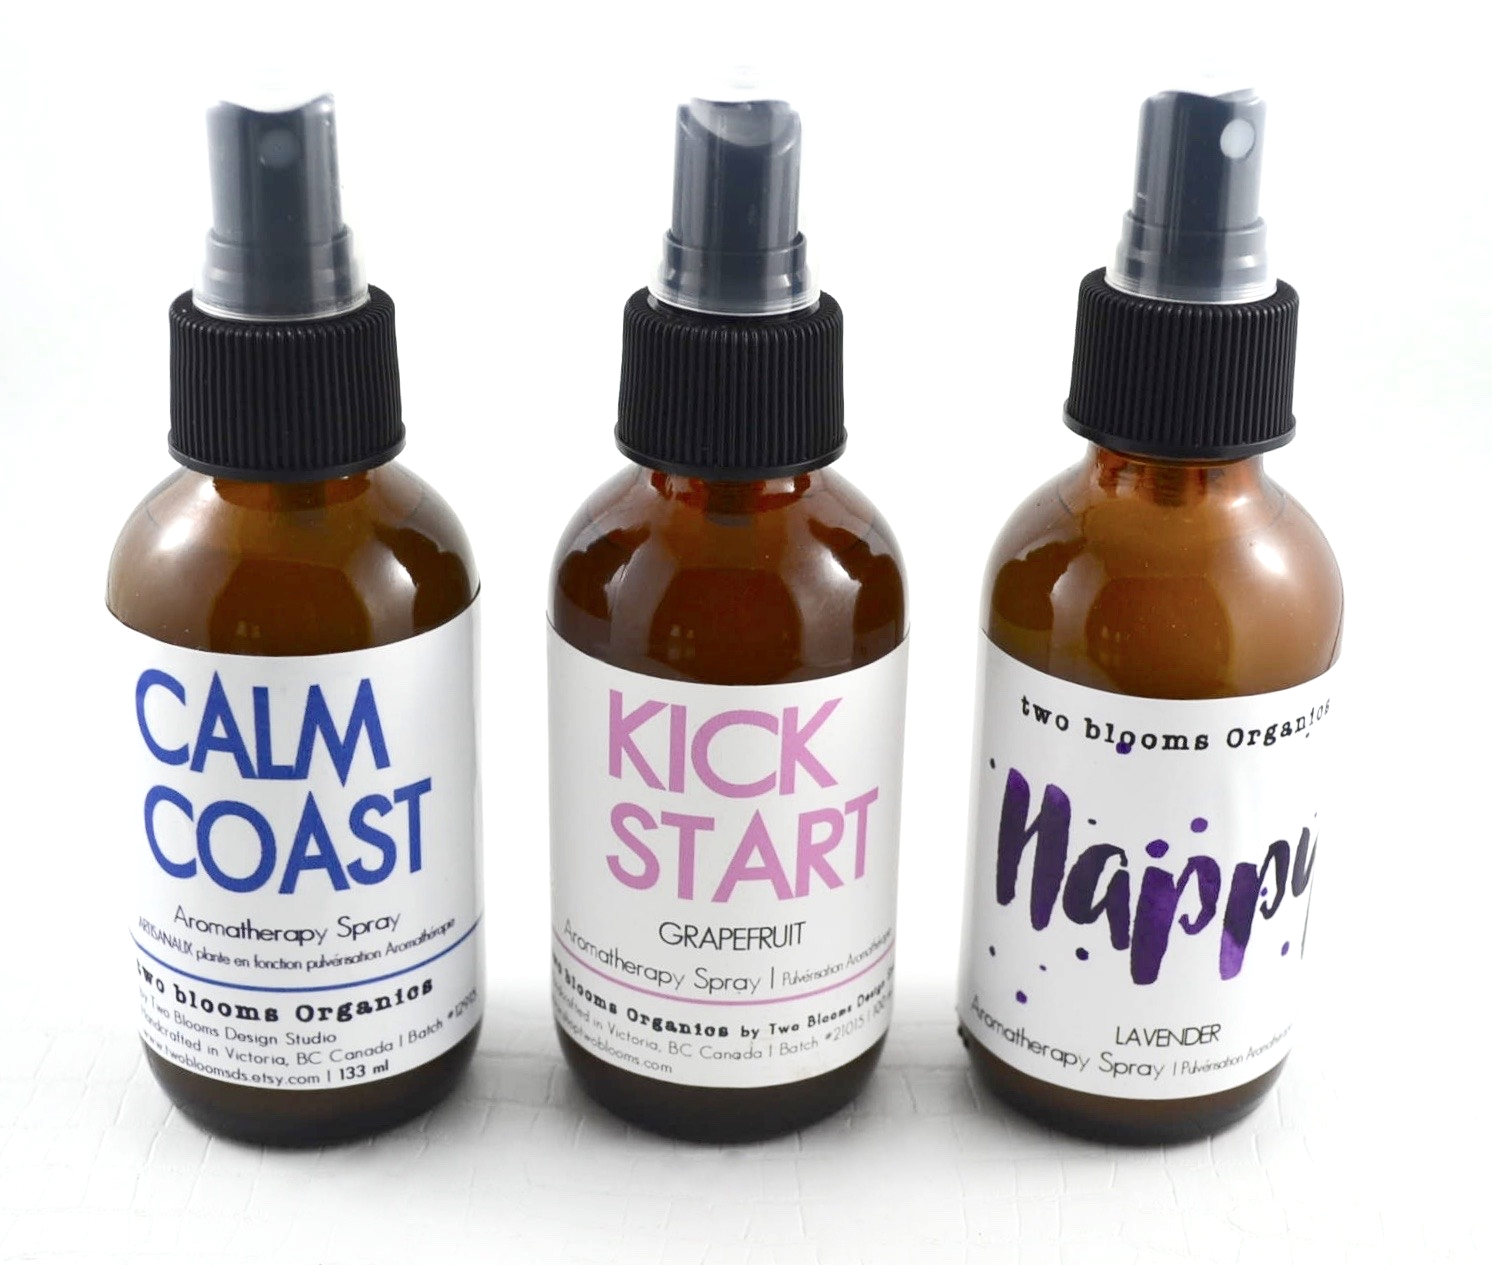 Calm Happy Kickstart Sprays.jpg